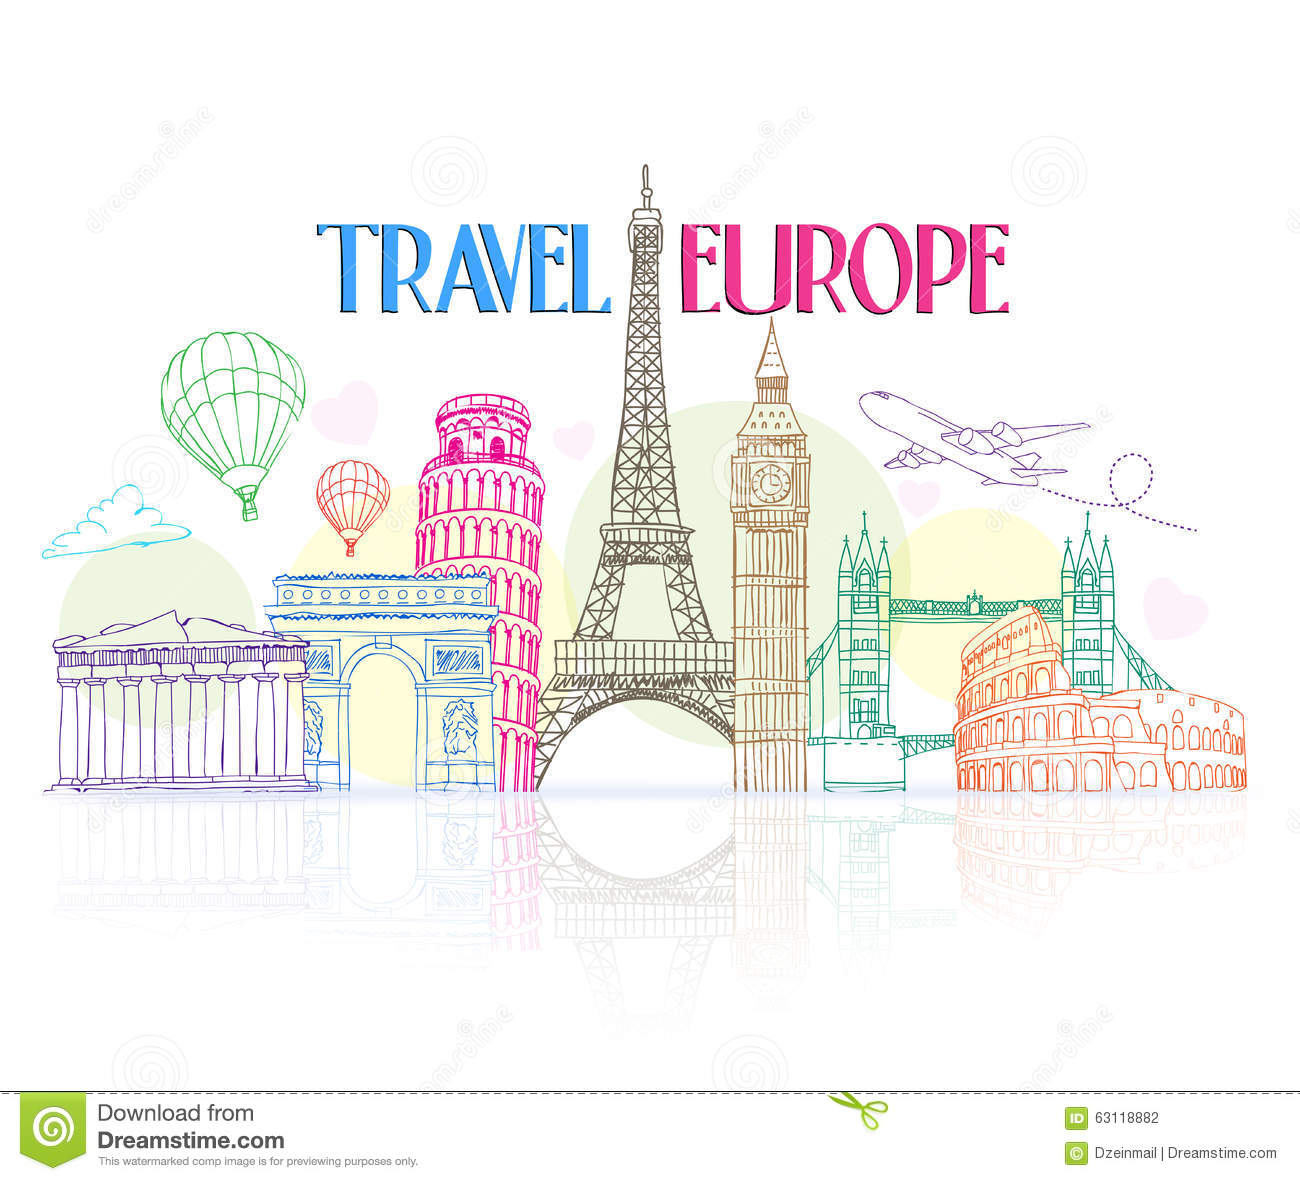 Colorful Travel Europe Hand Drawing with Famous Landmarks